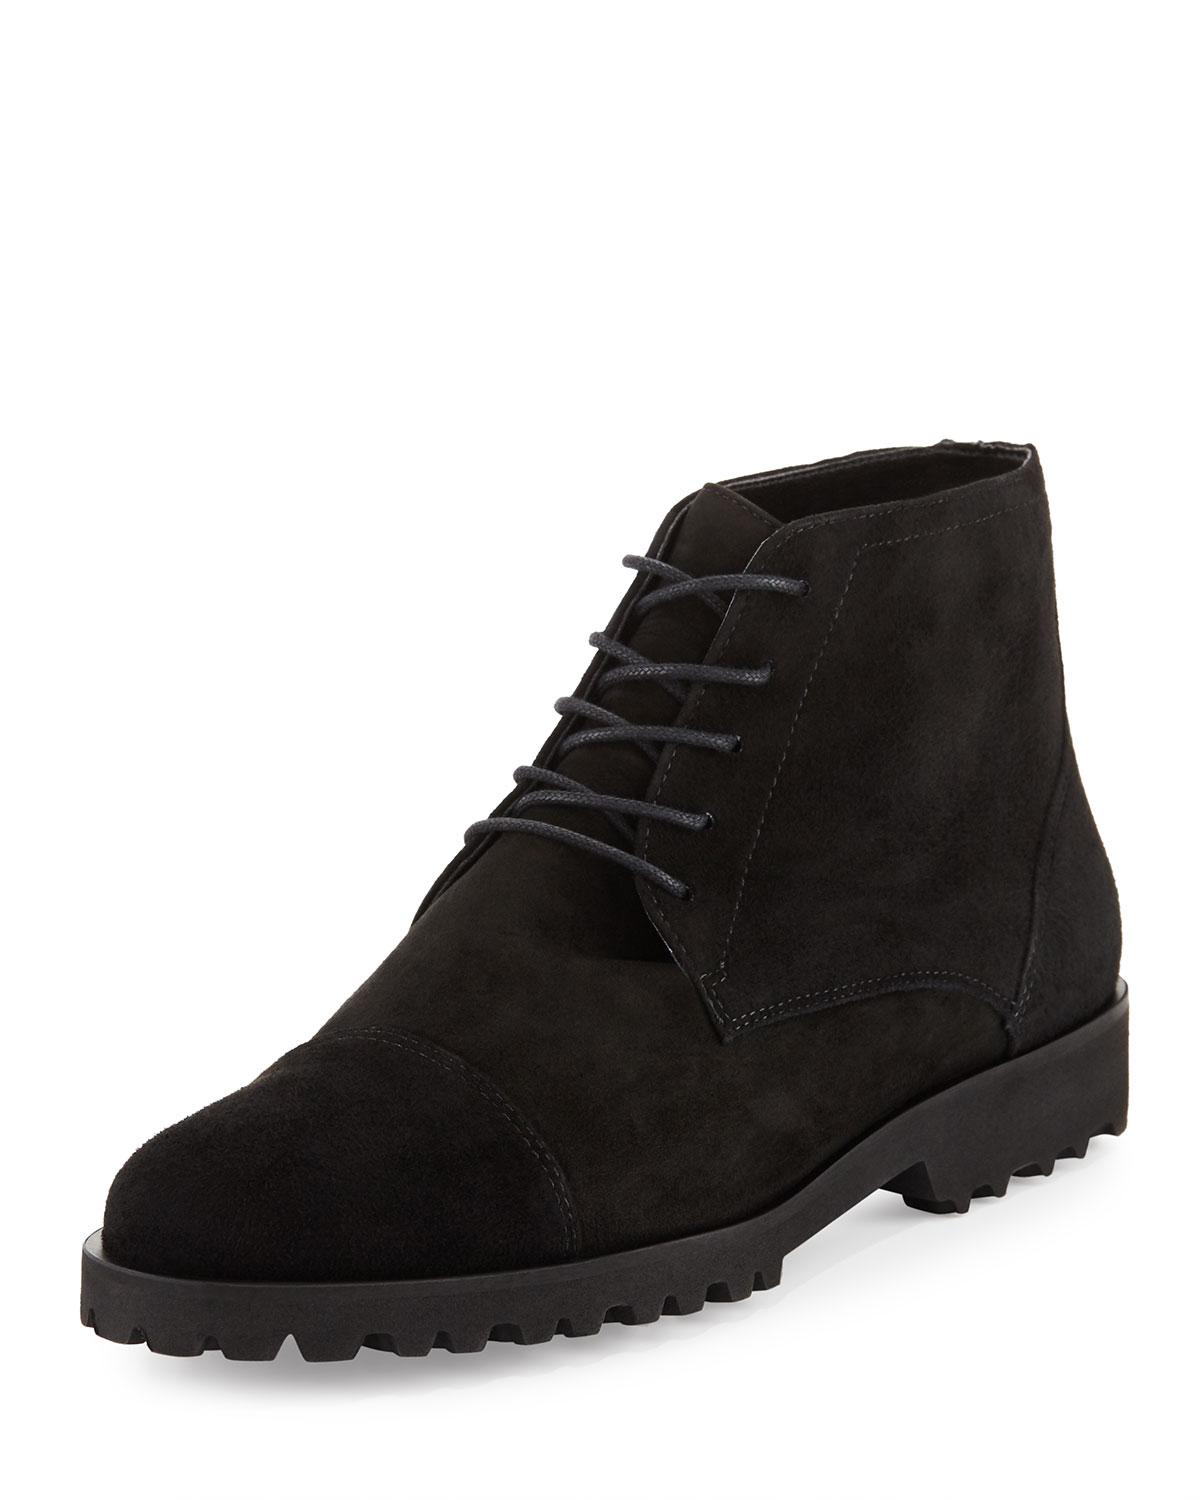 Amalfi by rangoni Tempra Suede Lace-up Boot in Black